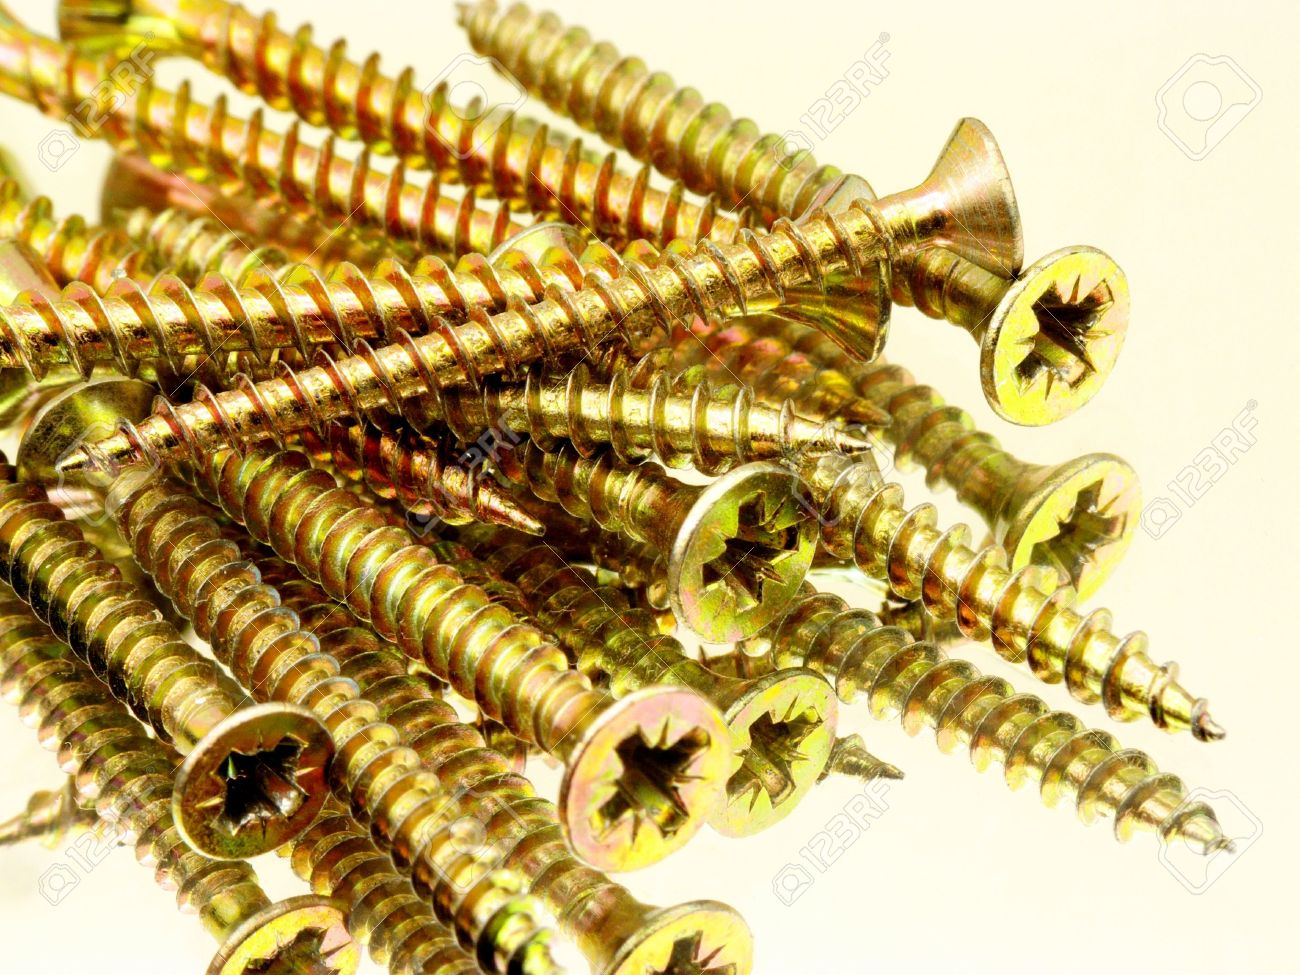 Screws High Quality Background on Wallpapers Vista